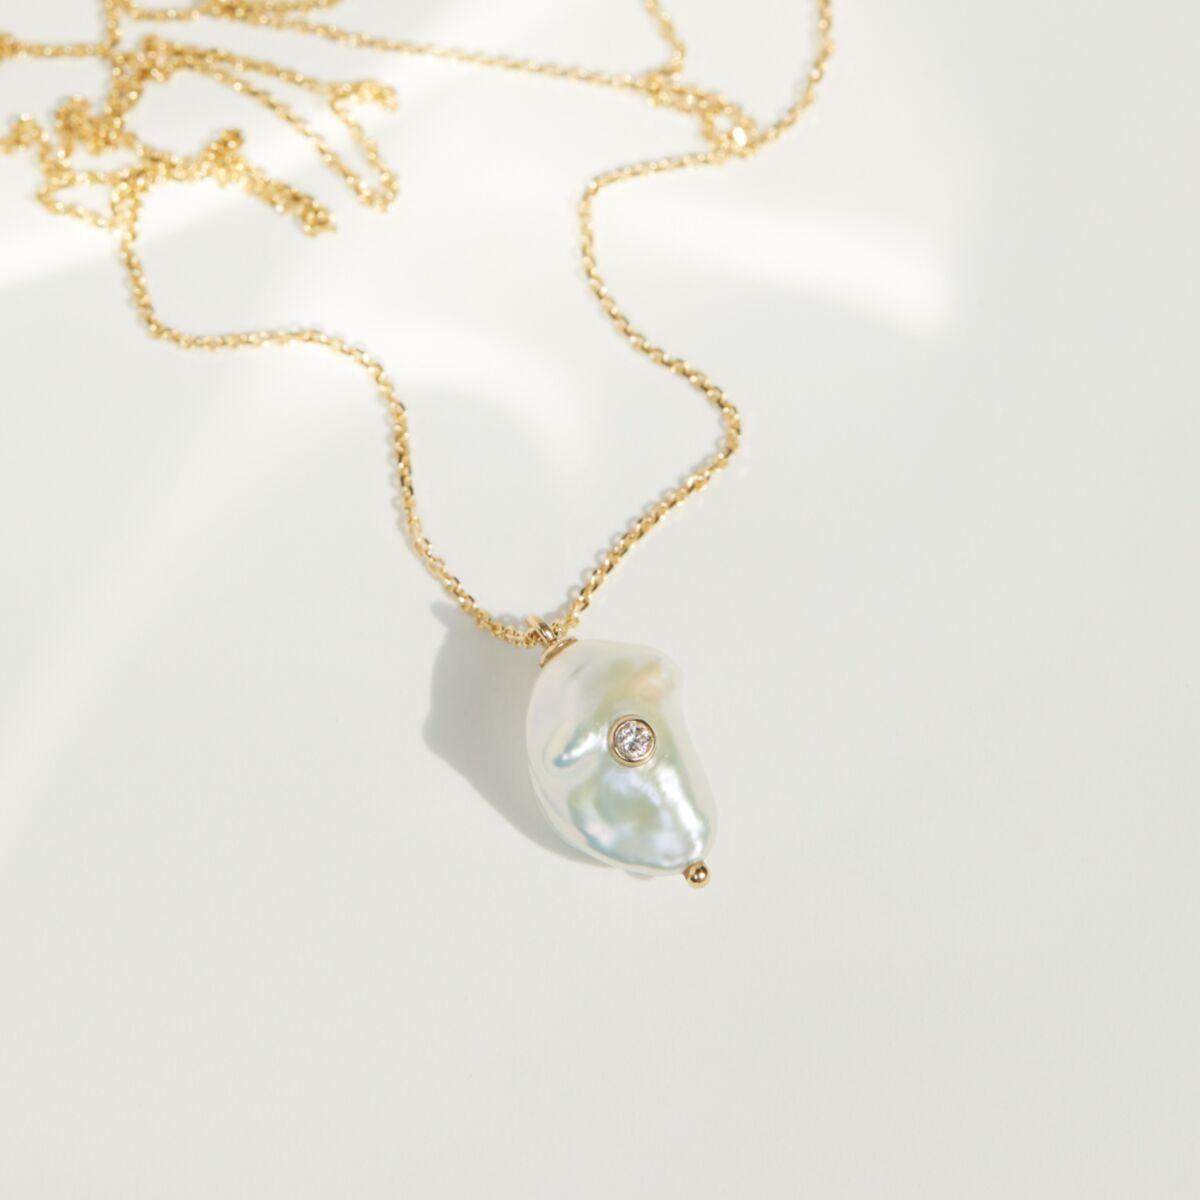 Baby Baroque Necklace with Diamond image